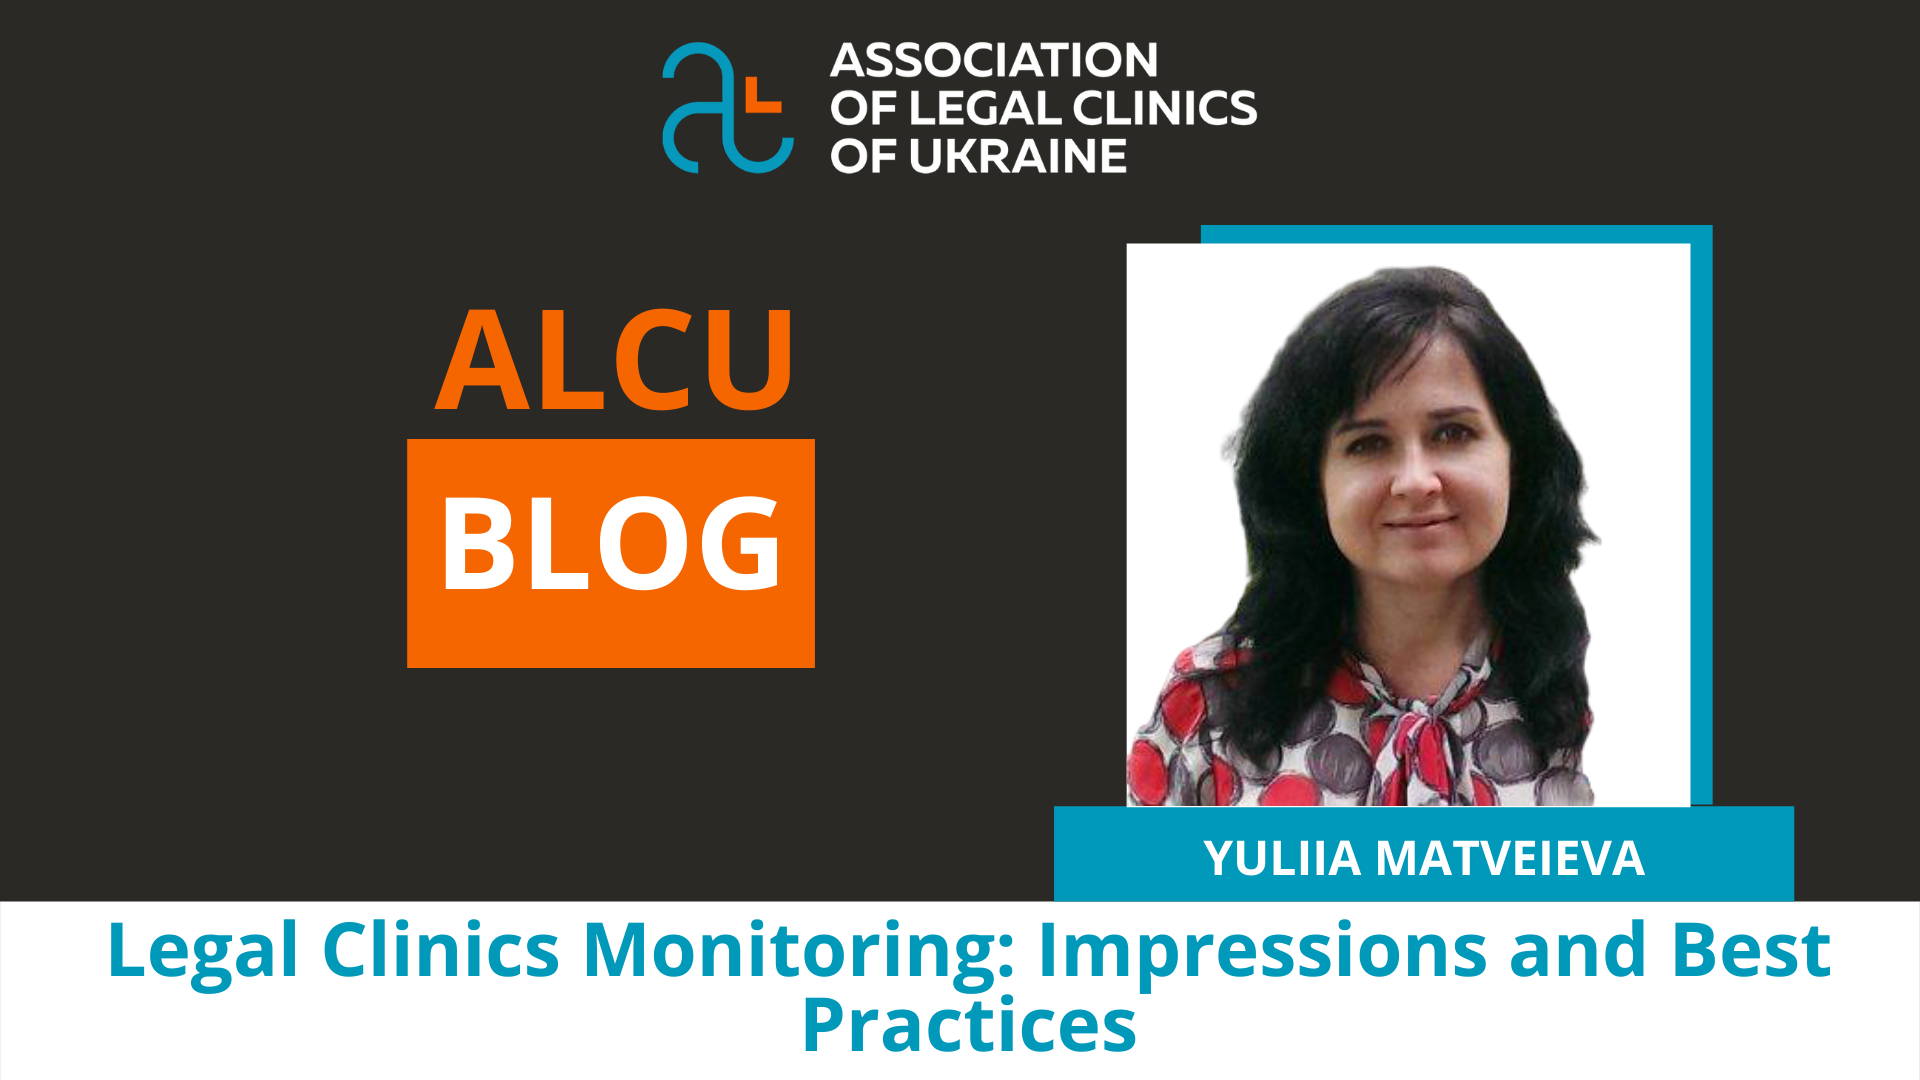 Monitoring of Legal Clinics: Impressions and Best Practices